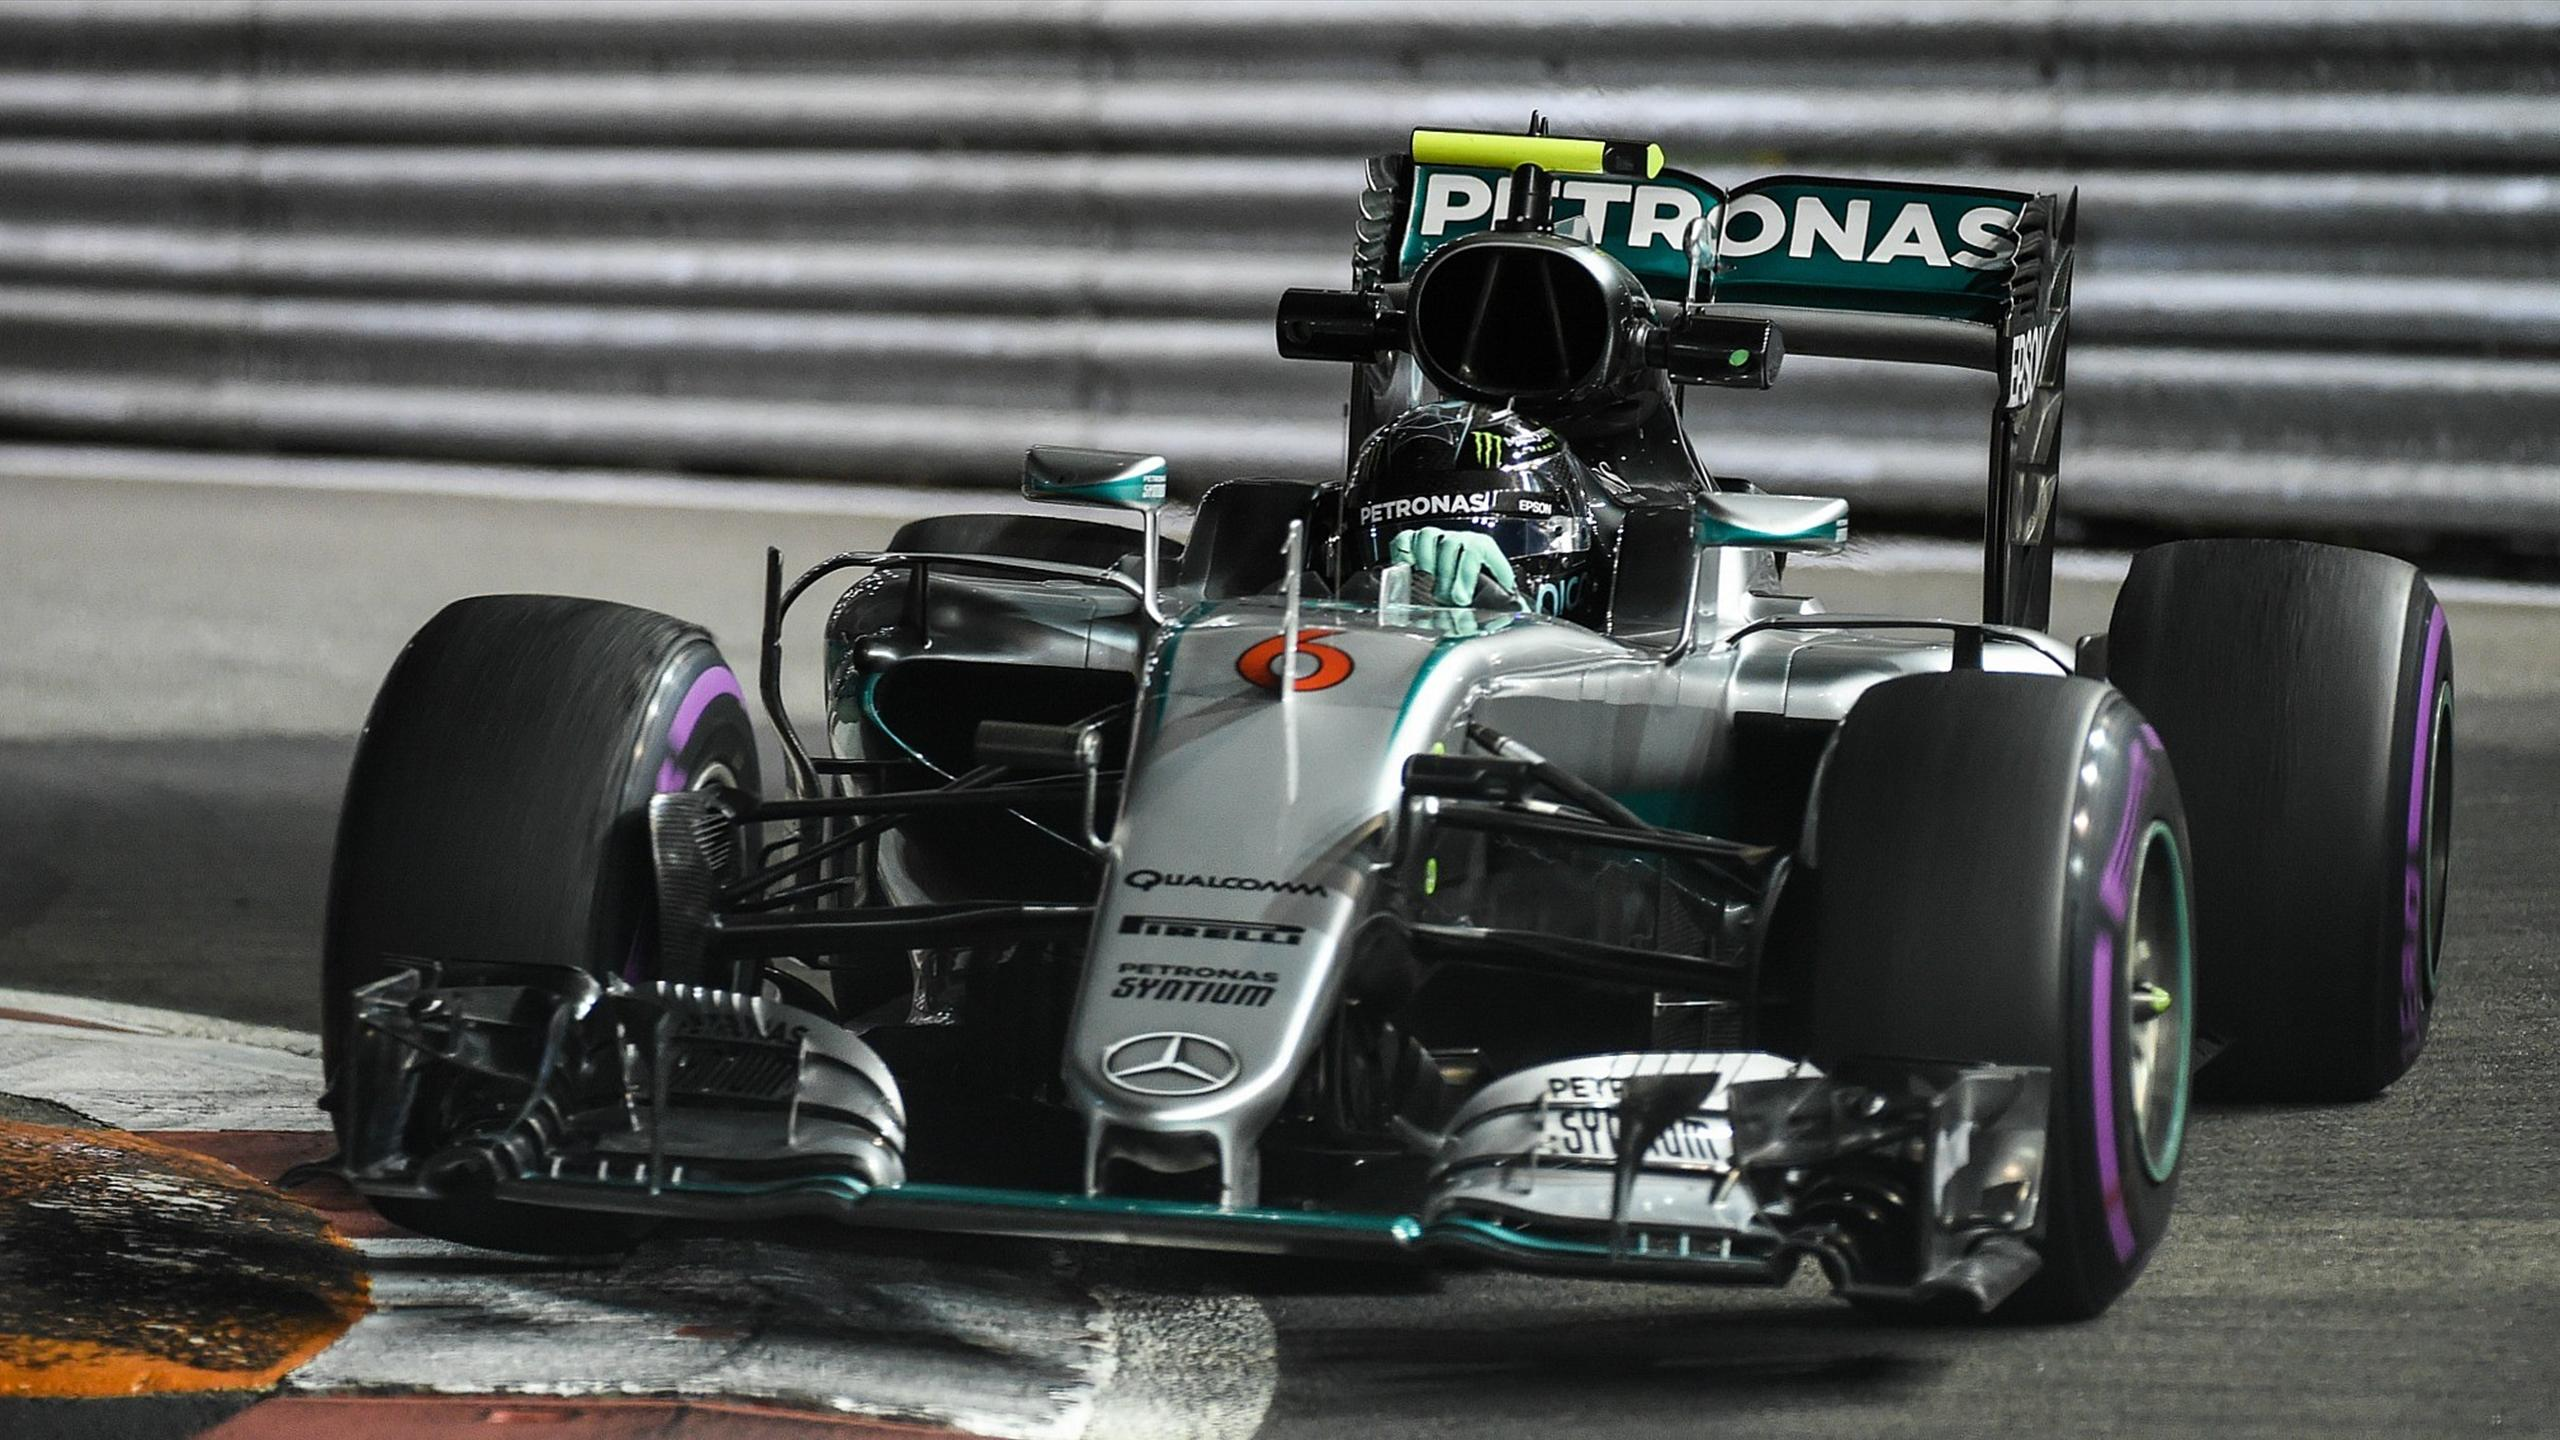 Nico Rosberg (Mercedes) - GP of Singapore 2016